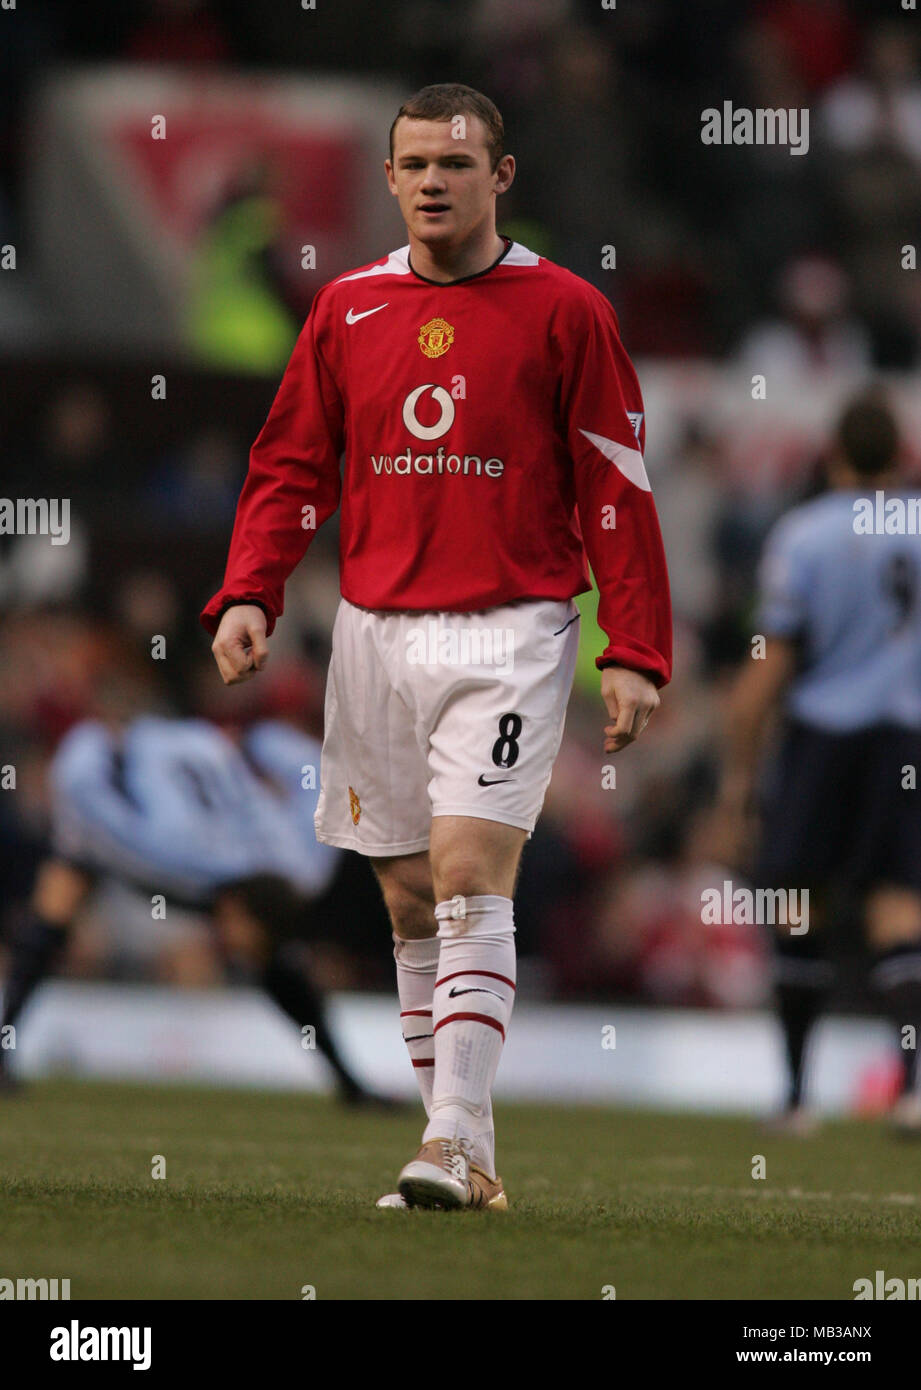 1ca1bf913ac Stock picture of Wayne Rooney playing for Manchester united in 2004 wearing  vodafone red kit.